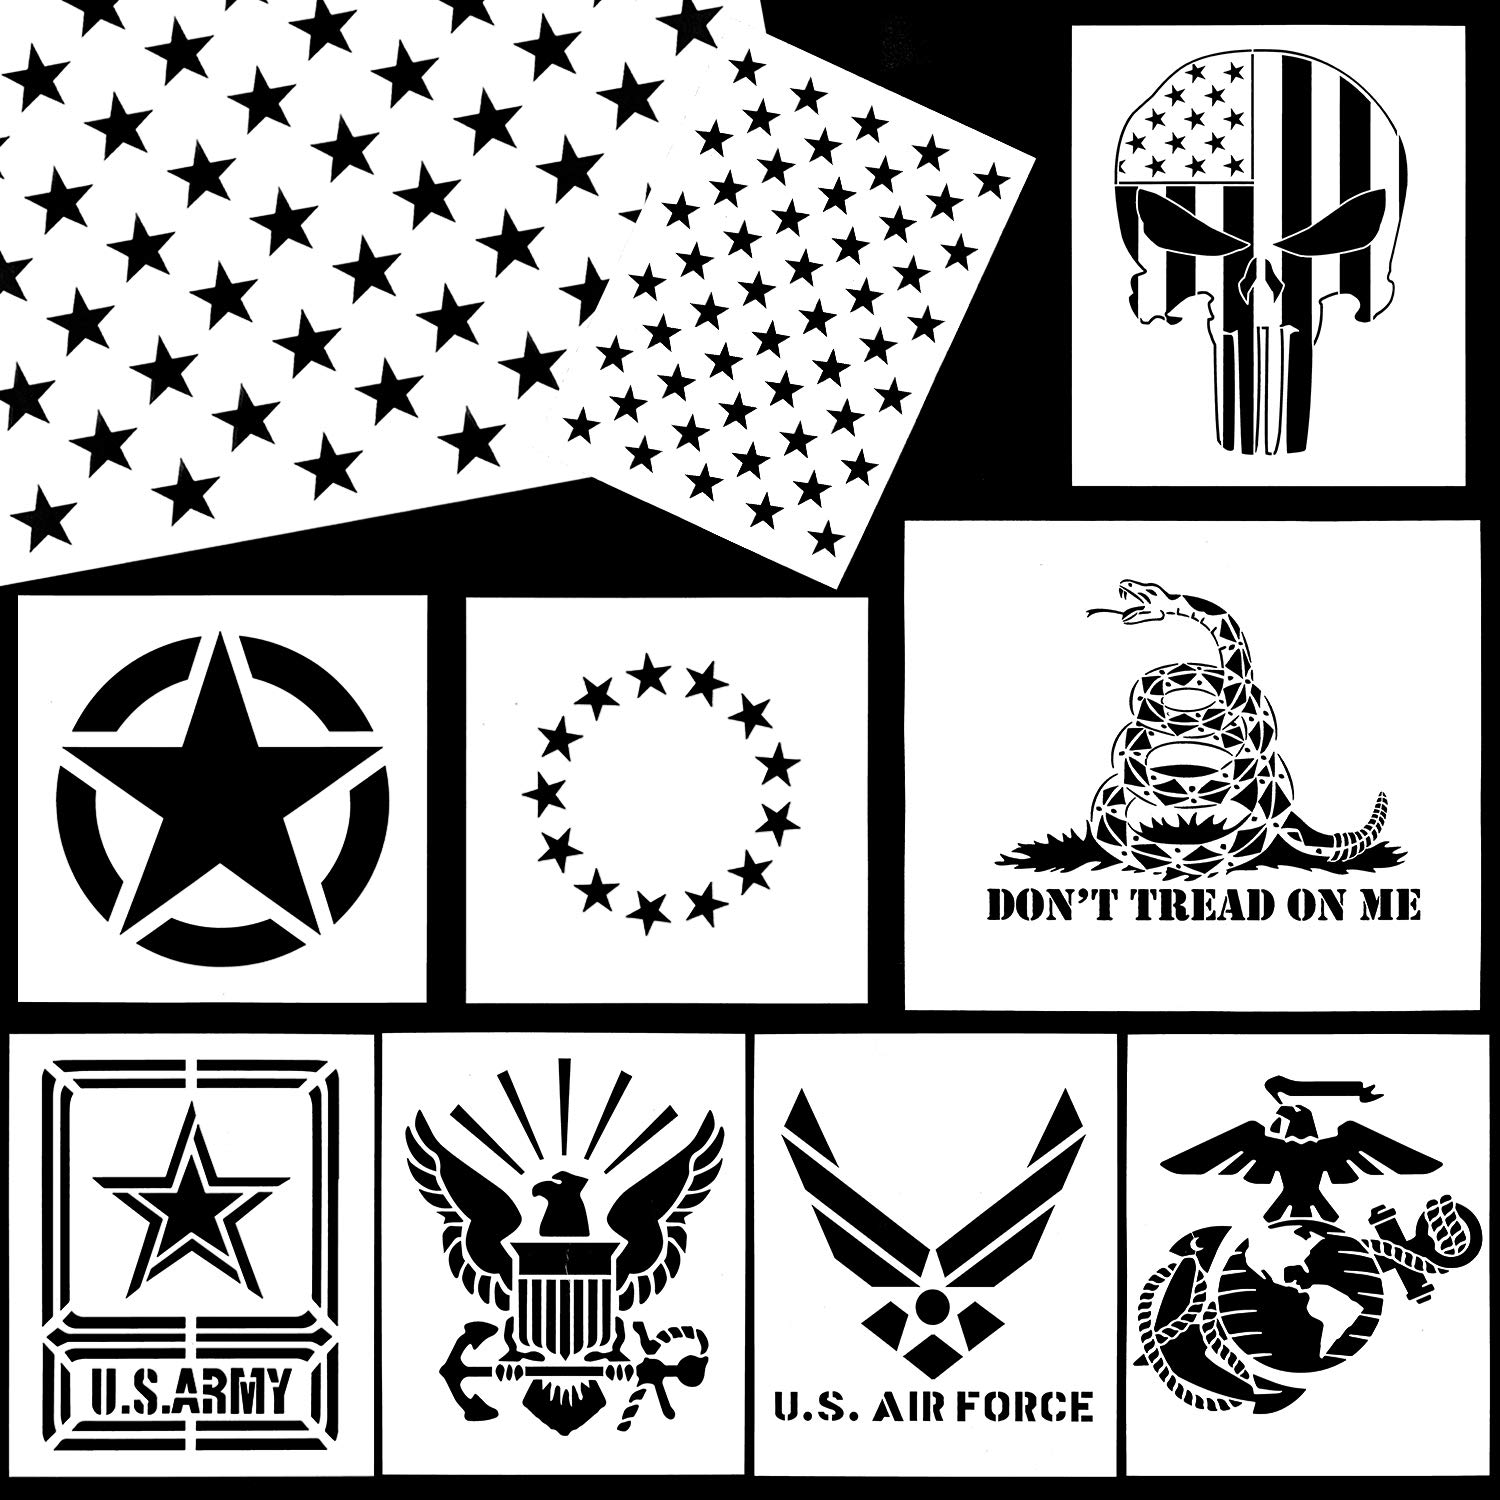 Whaline American Flag Stencil Military Series Template Marine Corps, Army,  Air Force for Painting on Wood, Fabric, Paper, Airbrush, Walls Art (10.